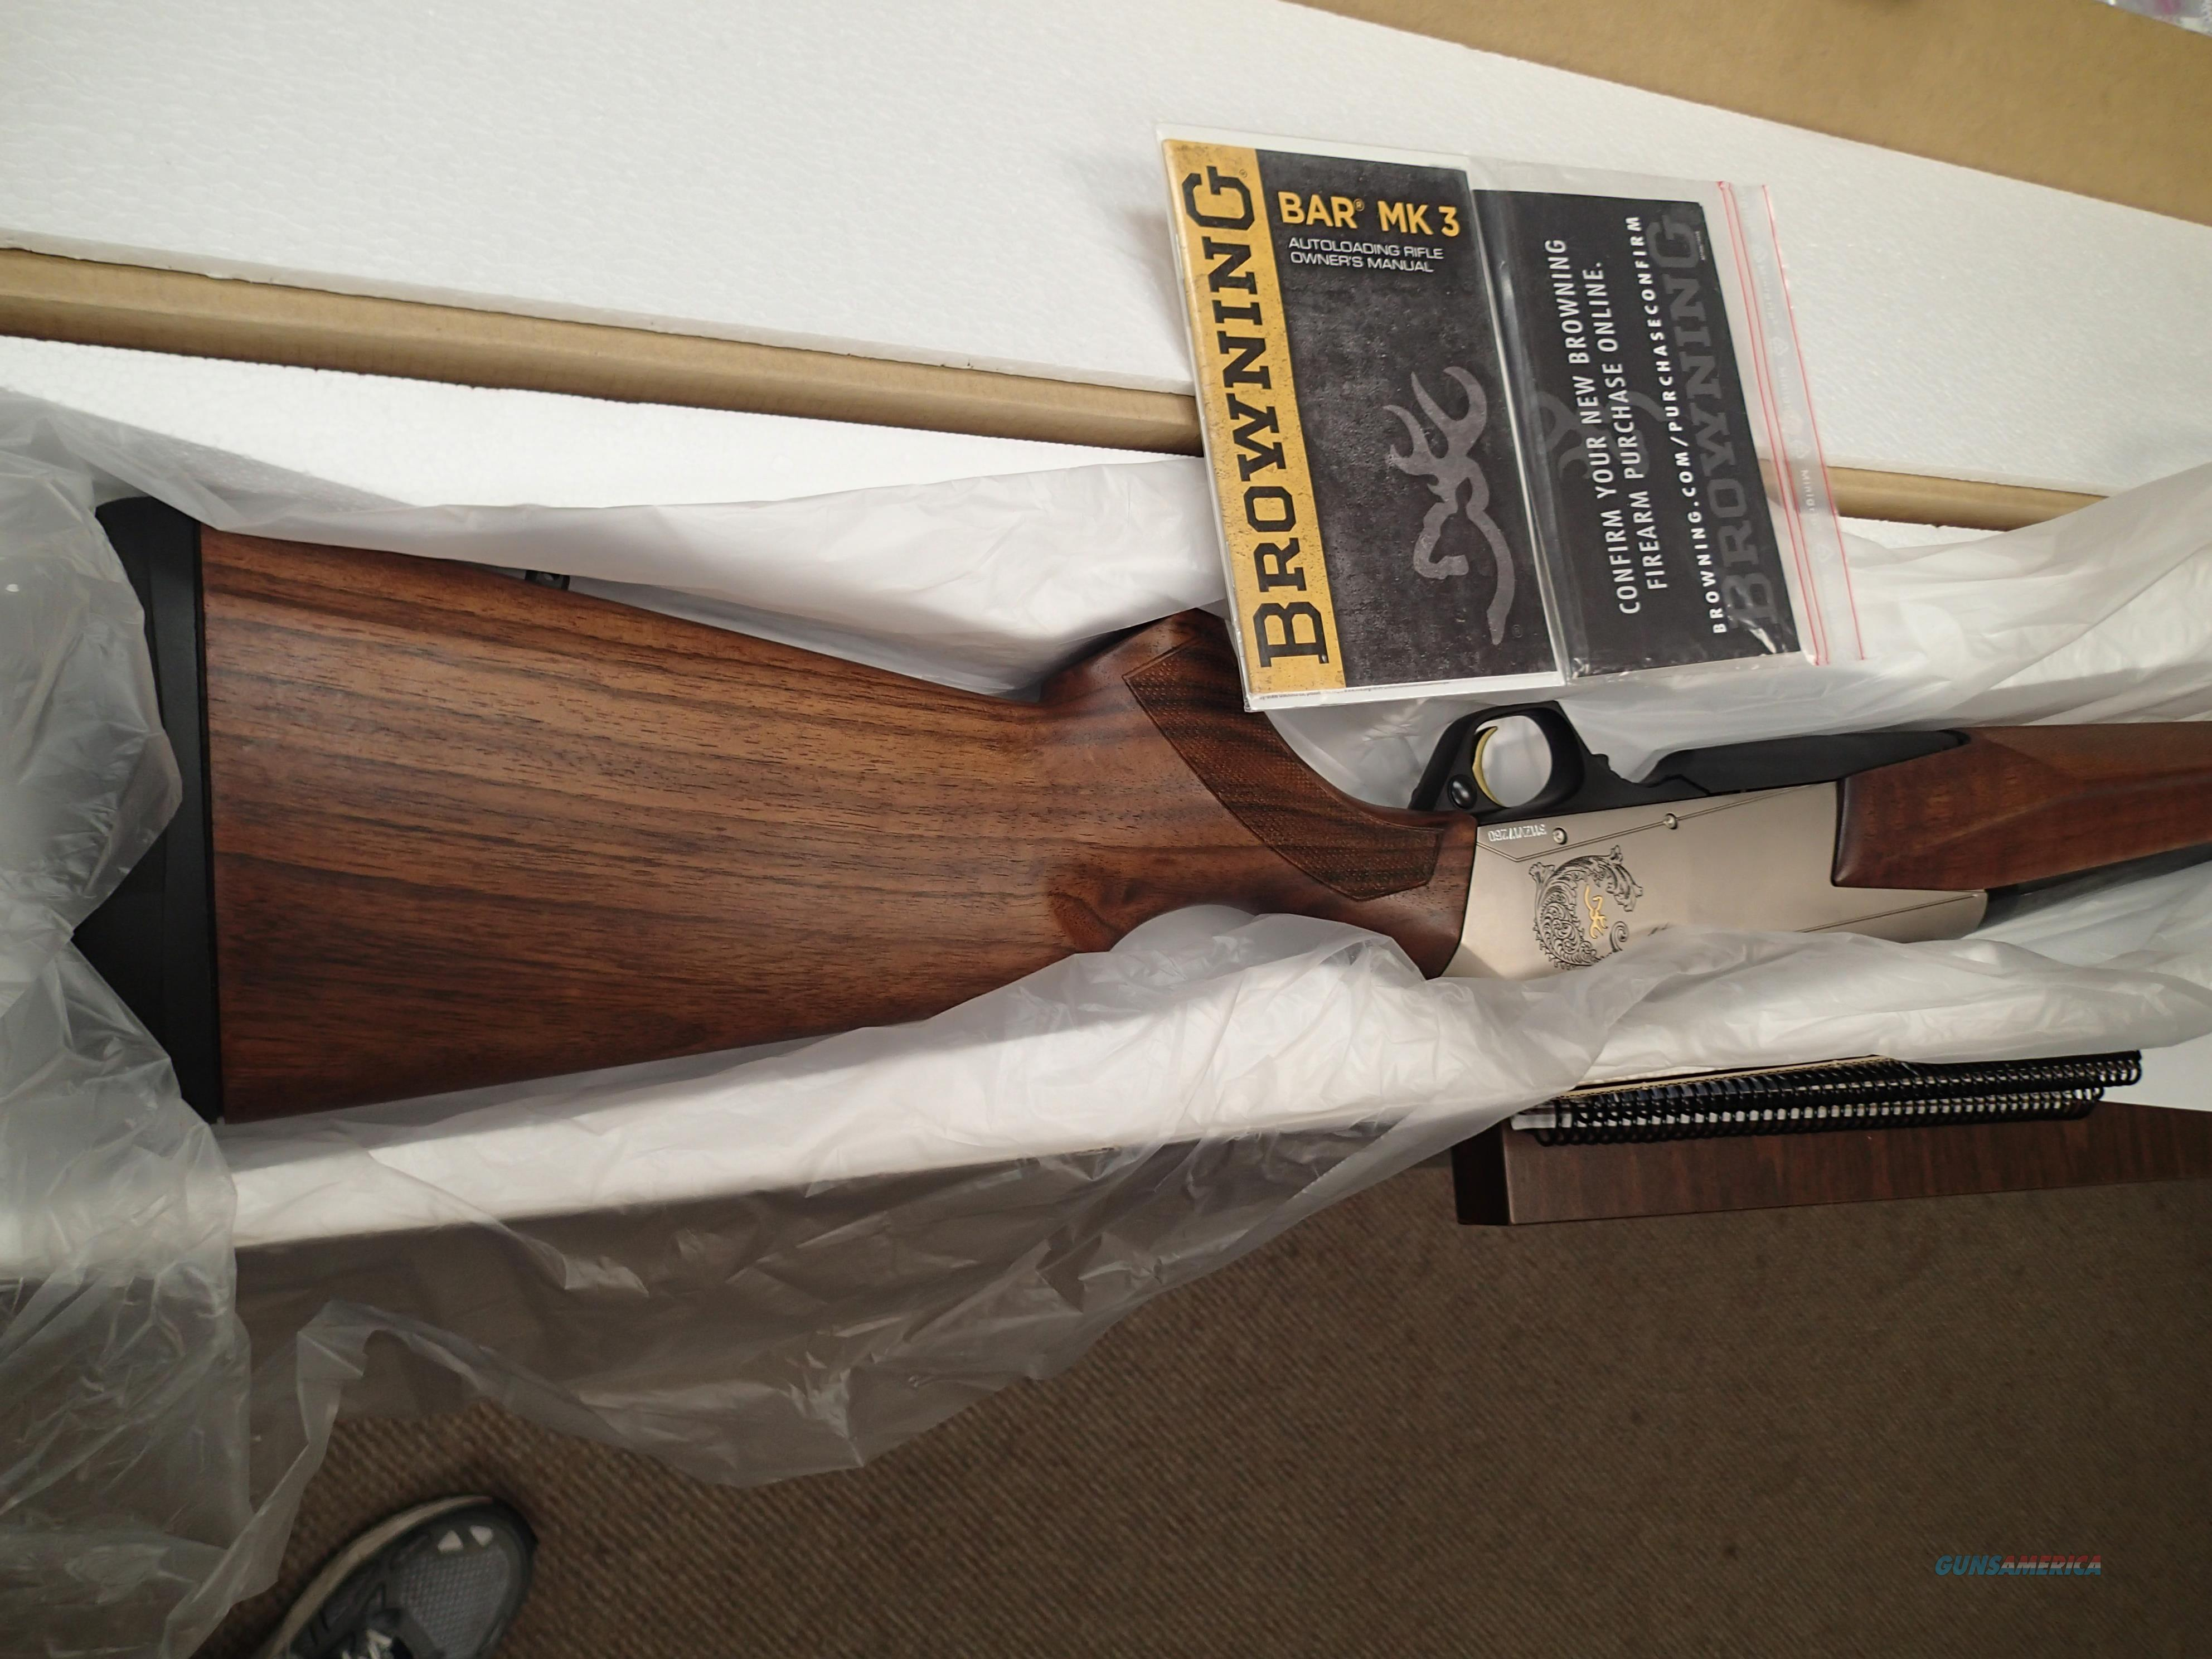 "Browning BAR MK3 Silver Receiver 23"" 270 wsm Caliber Scratch & Dent Sale   Guns > Rifles > Browning Rifles > Semi Auto > Hunting"